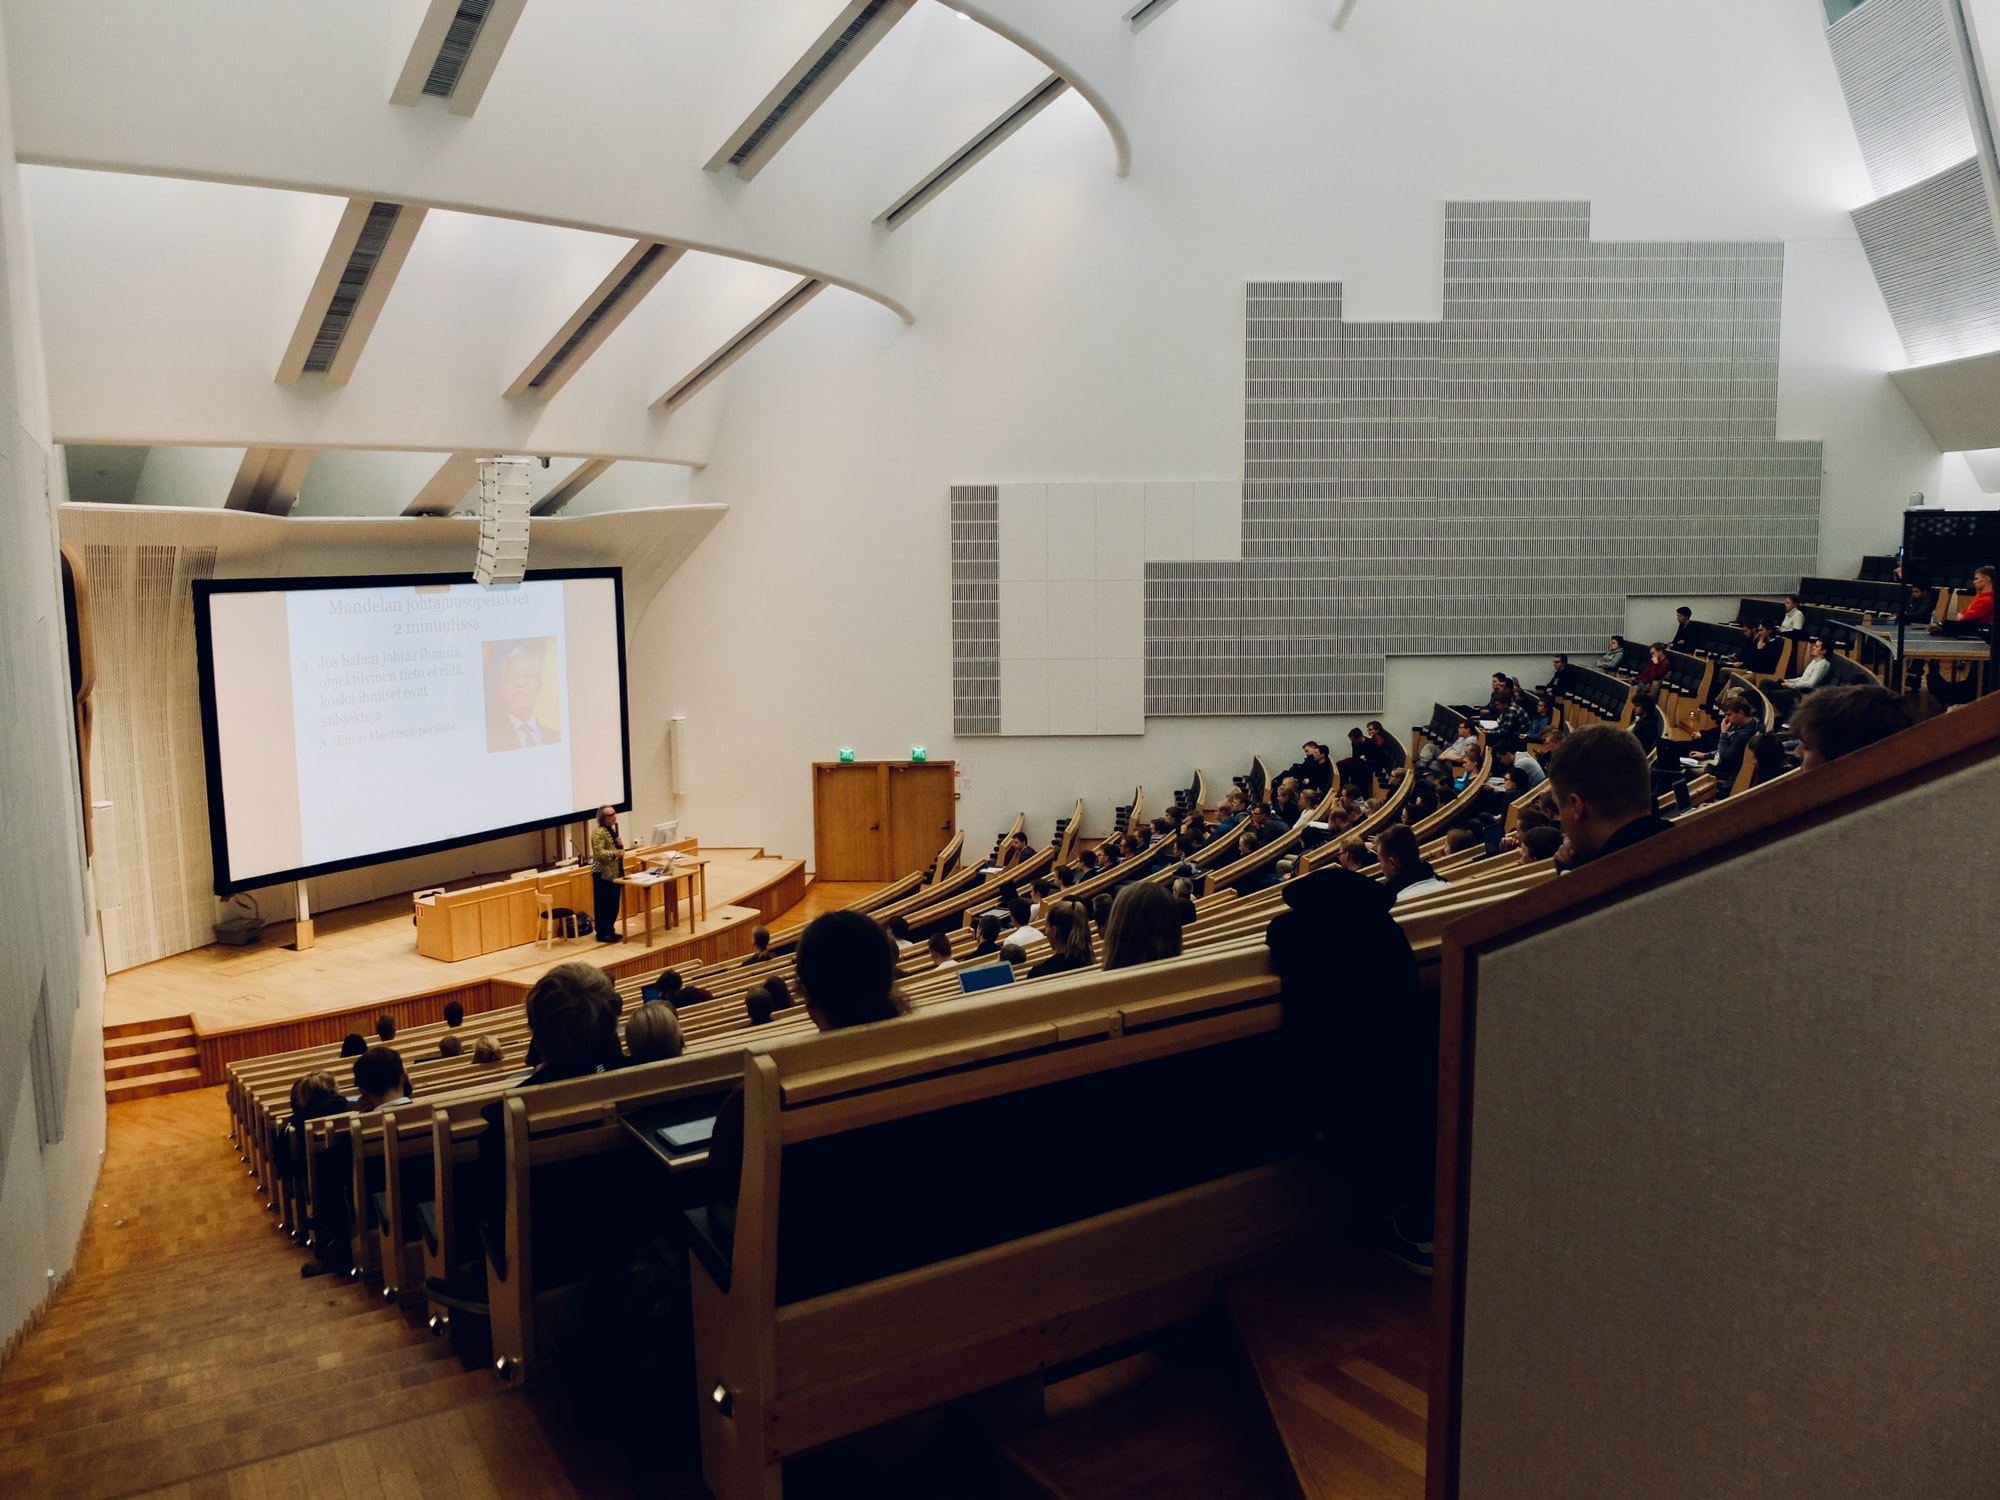 Students in a class at Aalto University in Espoo, Finland.